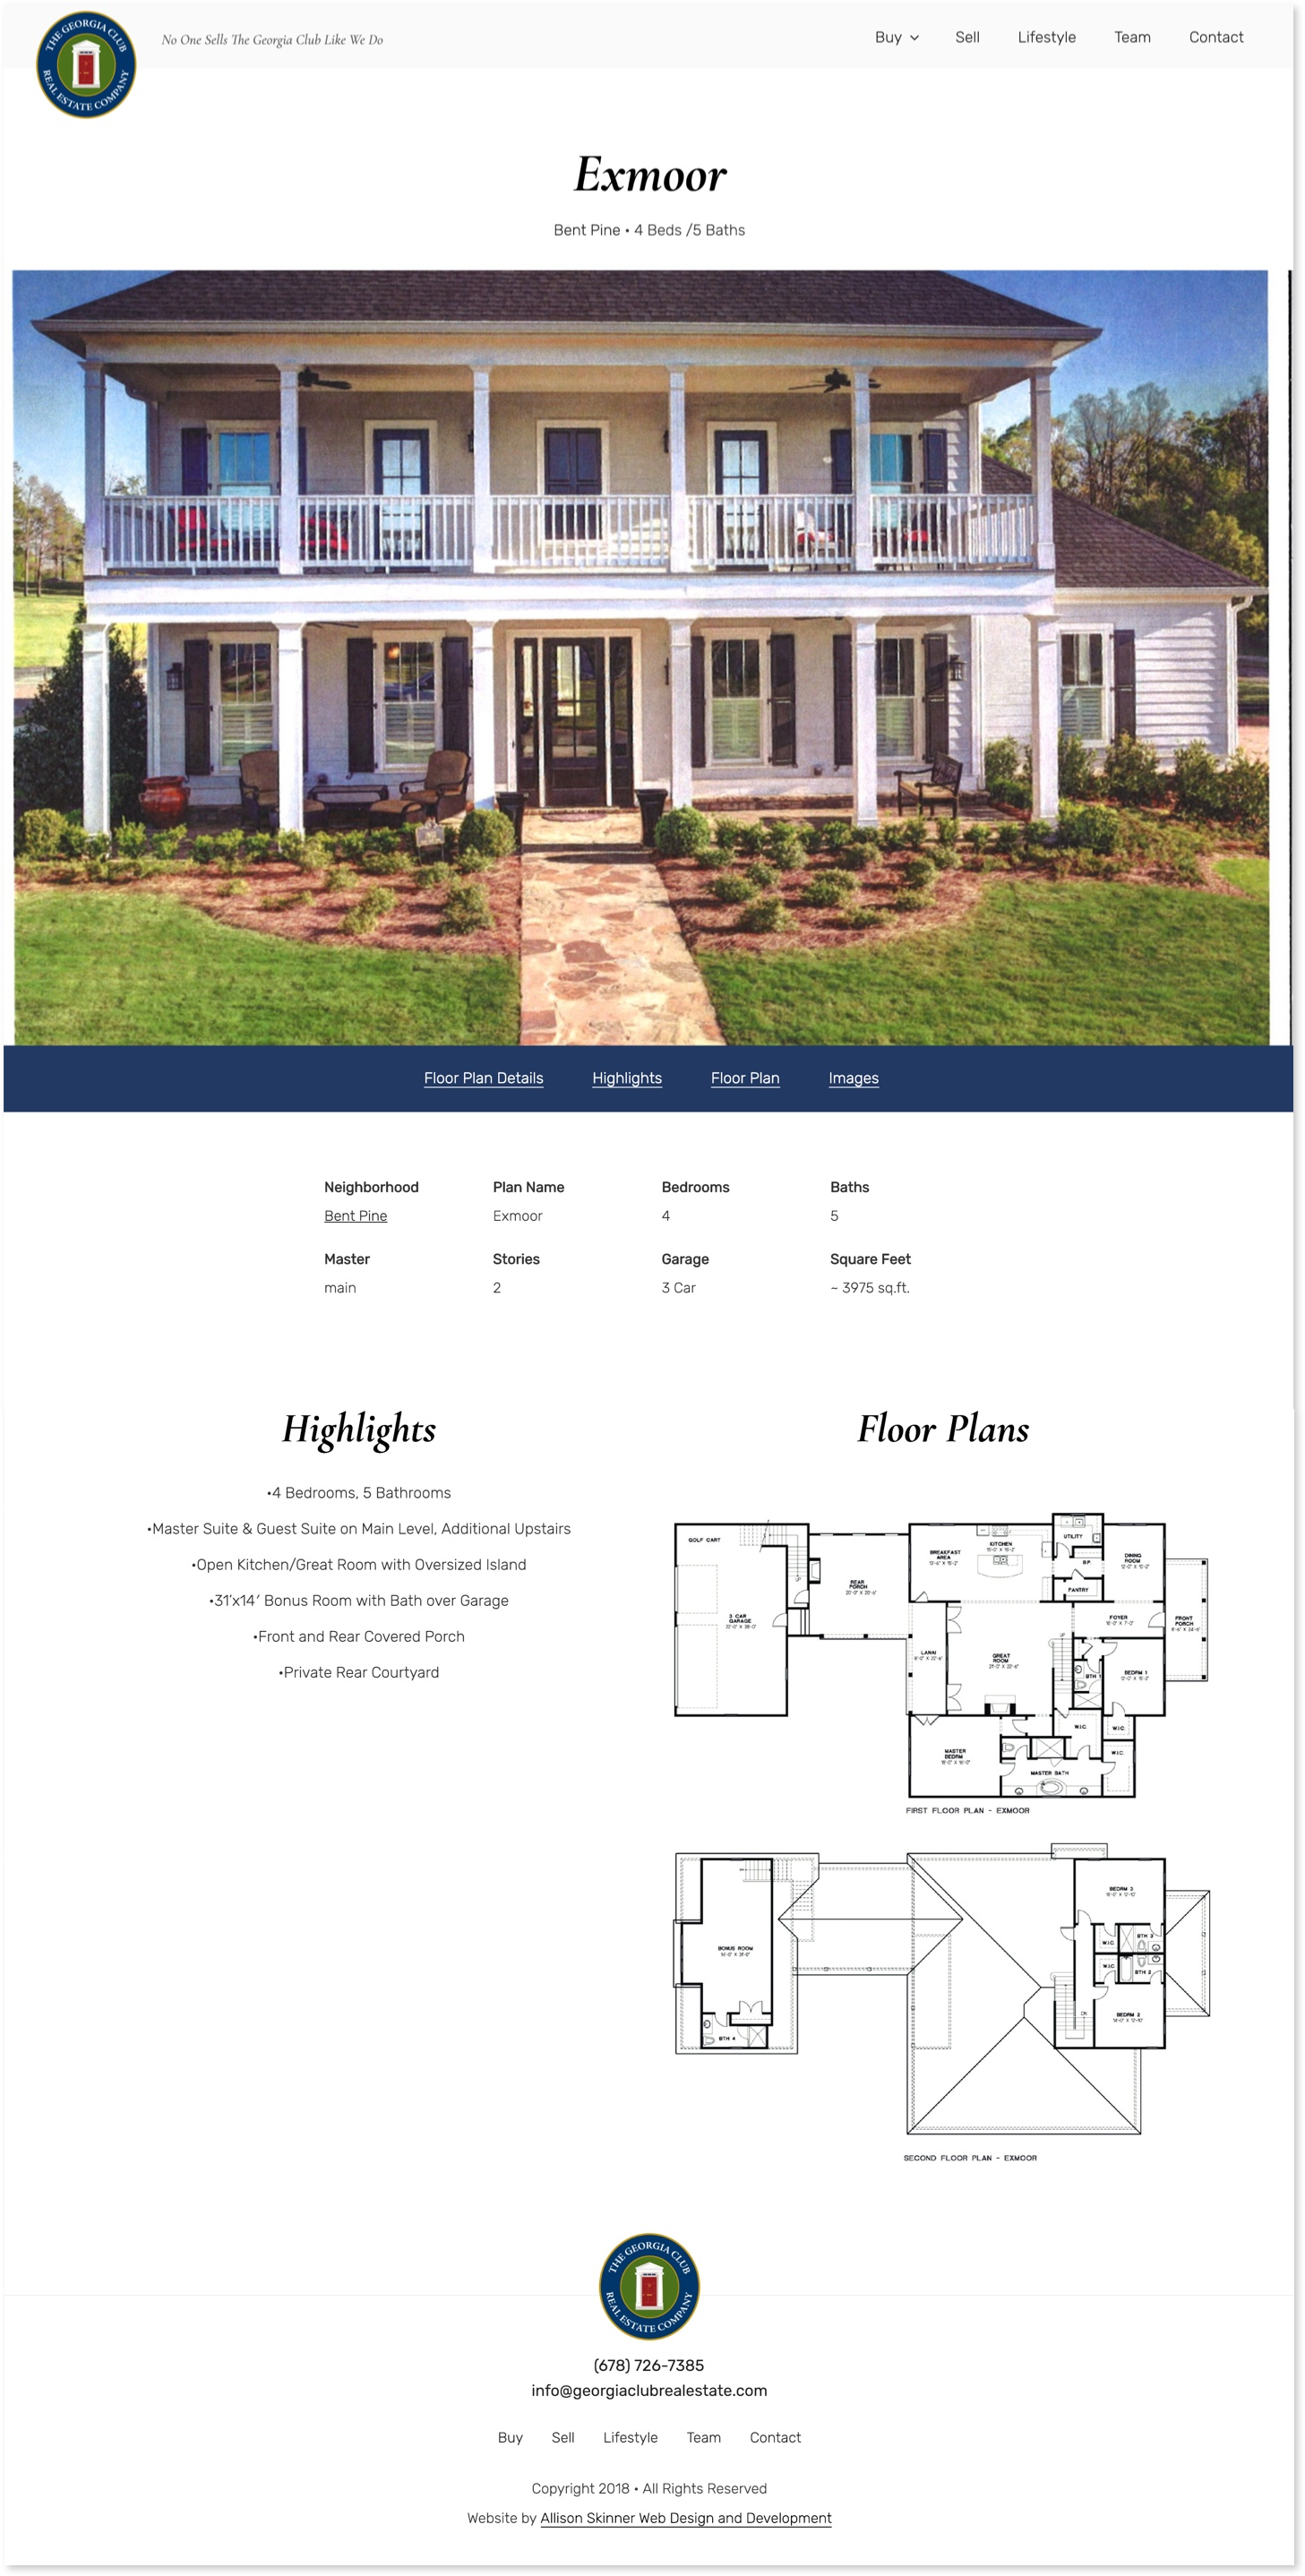 The Georgia Club Real Estate Company Floor Plans single page